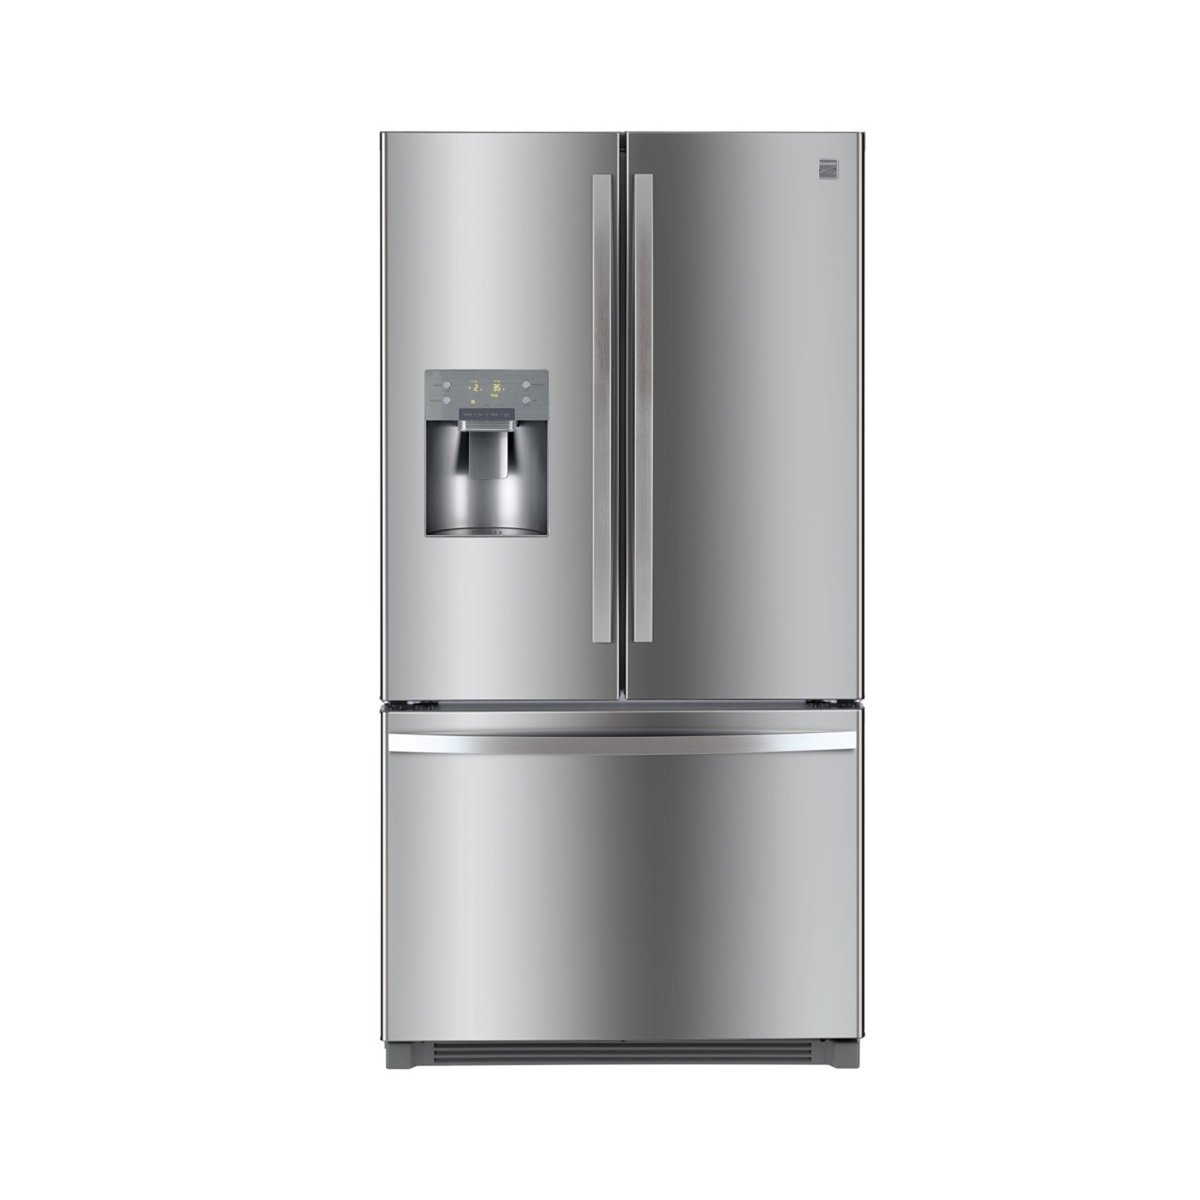 Amazon.com: Kenmore 73045 25.6 cu.ft. French Door Refrigerator with  Bottom-Freezer, includes delivery and hookup: Appliances